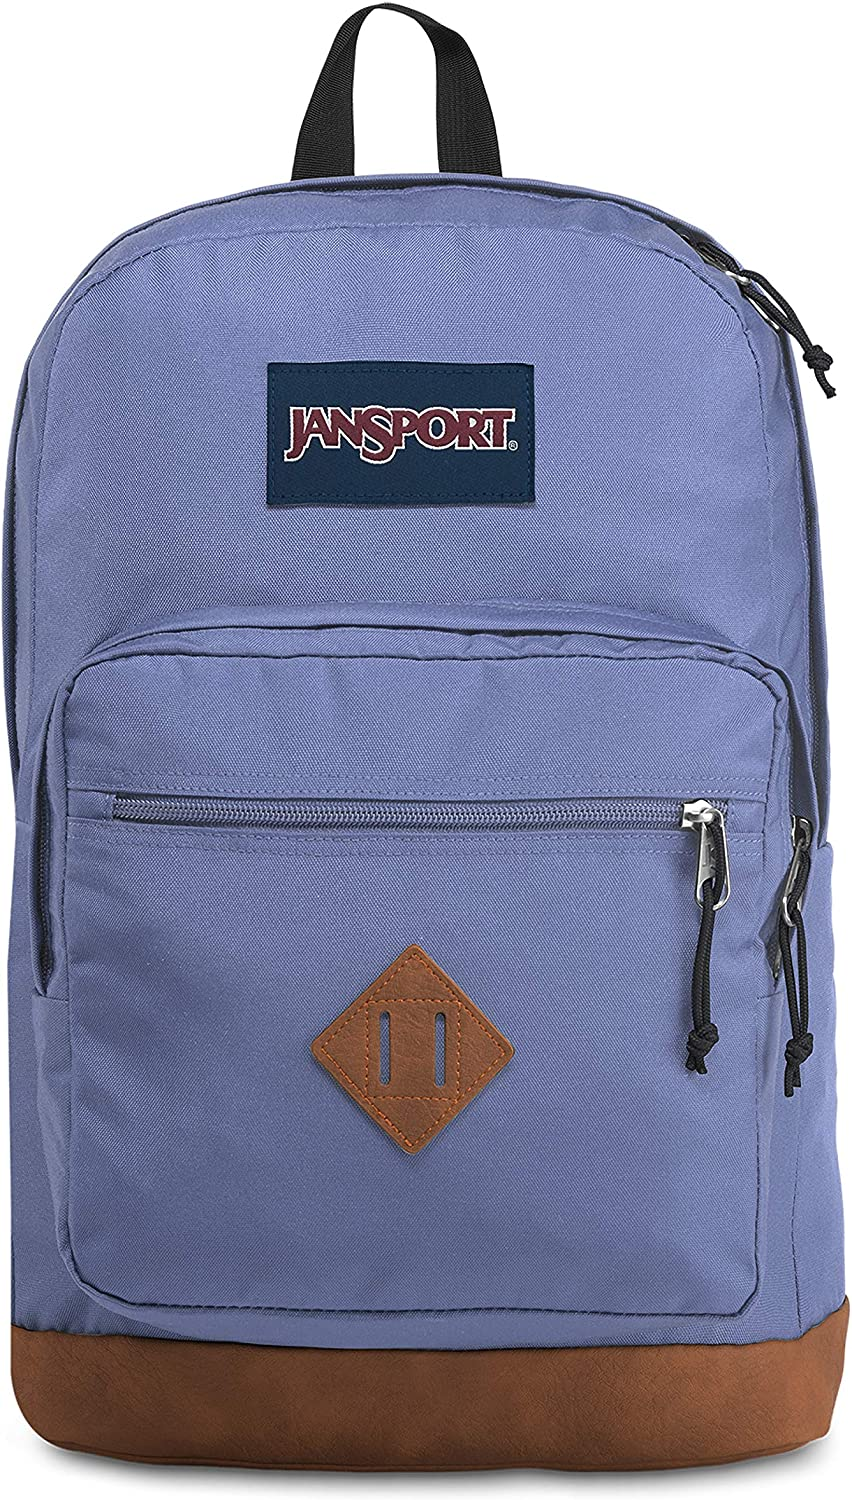 Navy blue NWT Brand New w// tags JanSport City View Laptop Backpack